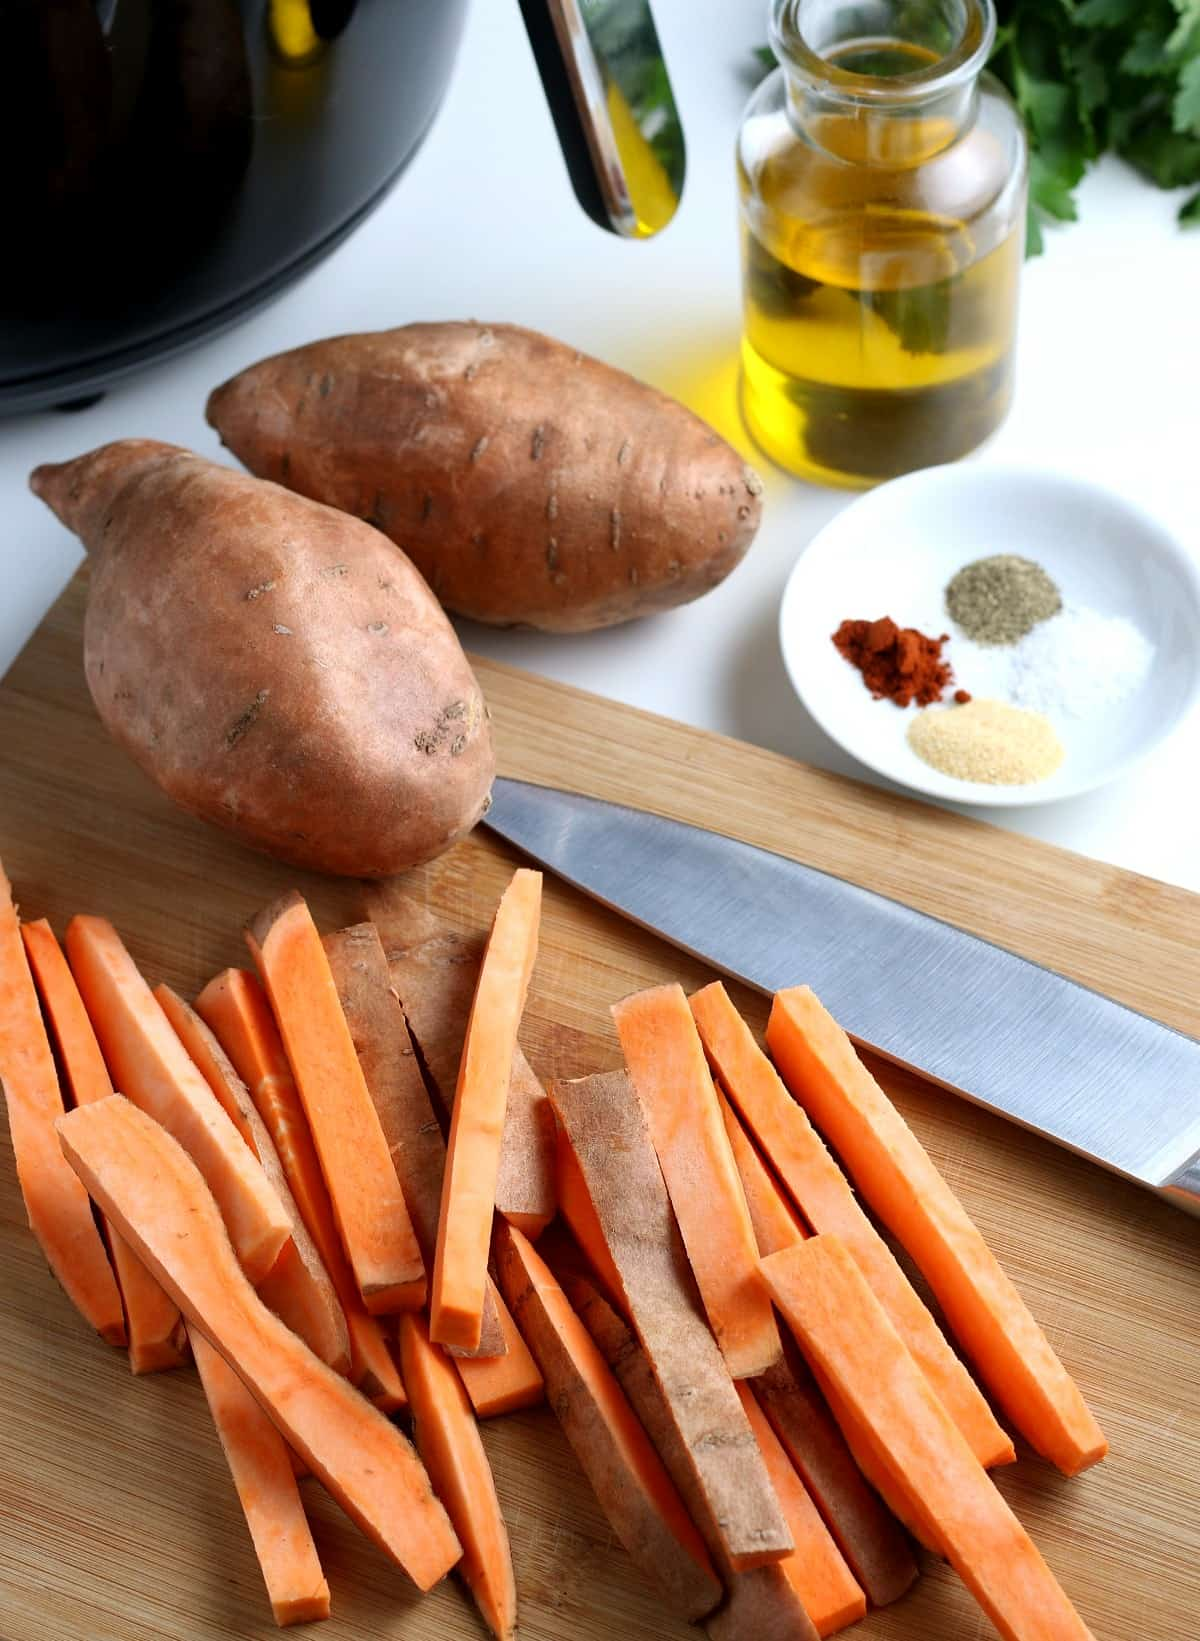 Sliced sweet potatoes in a french fry shape on a wooden board with a knife.